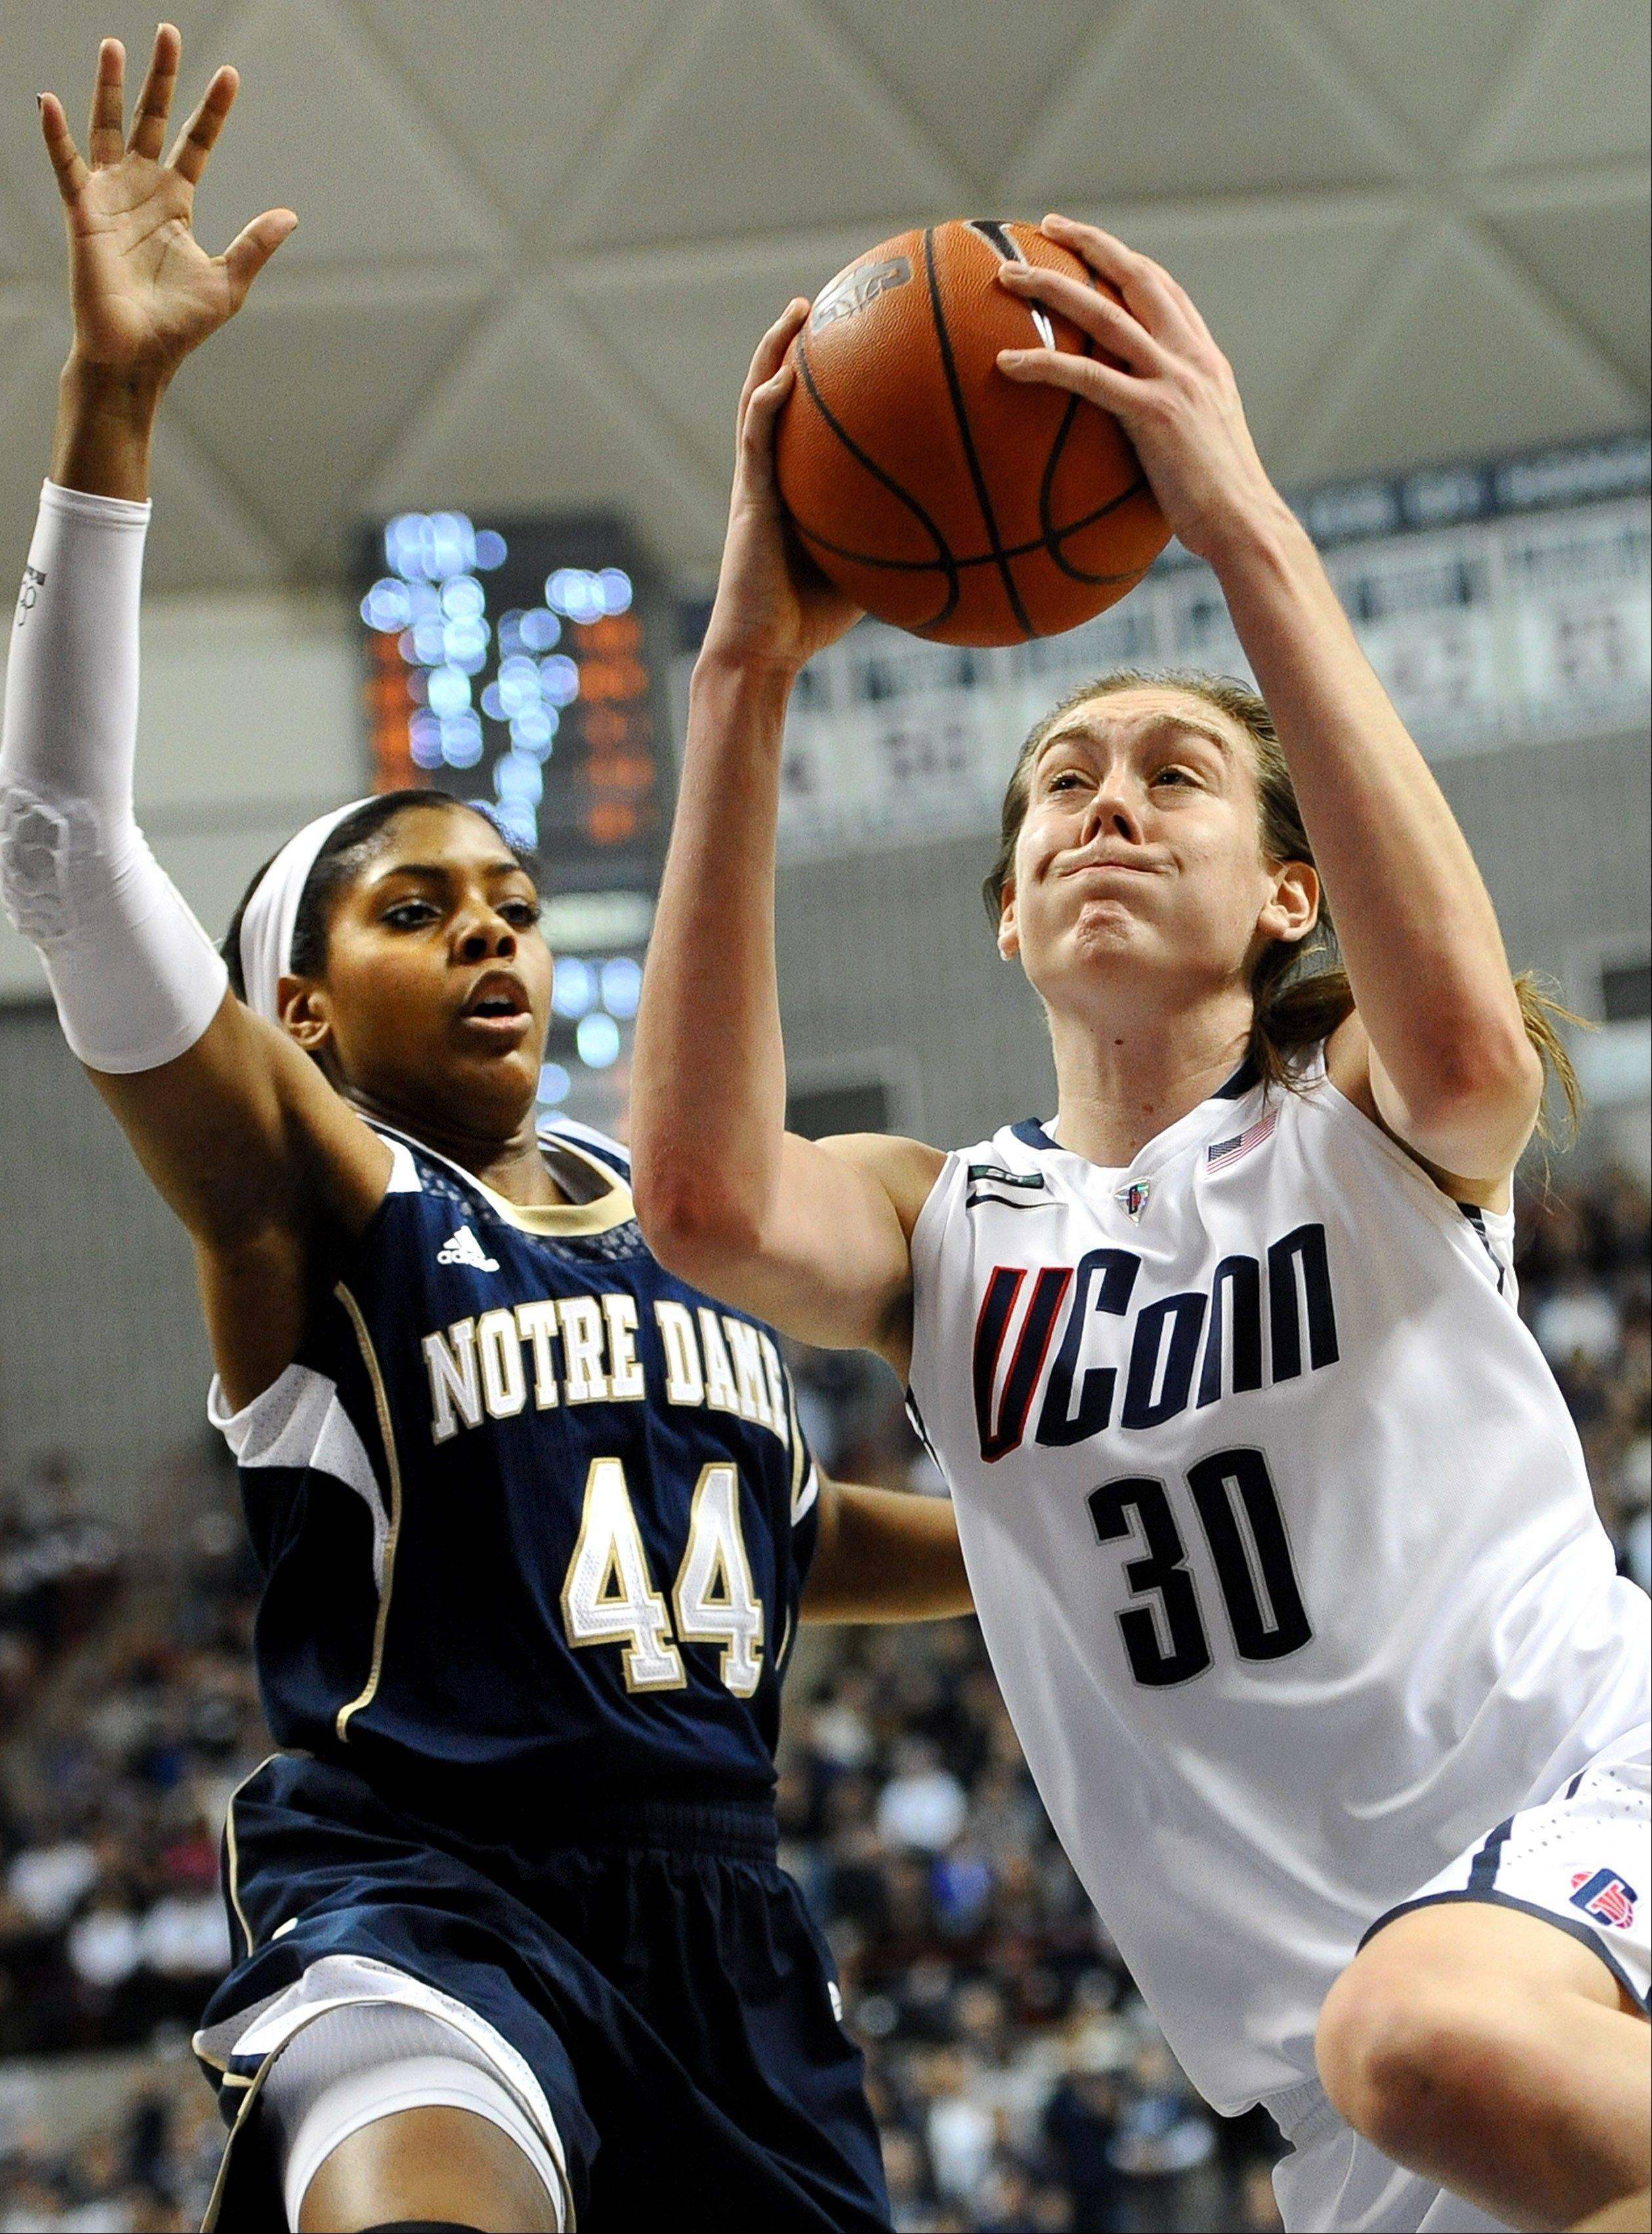 Connecticut's Breanna Stewart (30) drives to the basket while guarded by Notre Dame's Ariel Braker during the second half of an NCAA college basketball game in Storrs, Conn., Saturday, Jan. 5, 2013. Notre Dame won 73-72. (AP Photo/Jessica Hill)